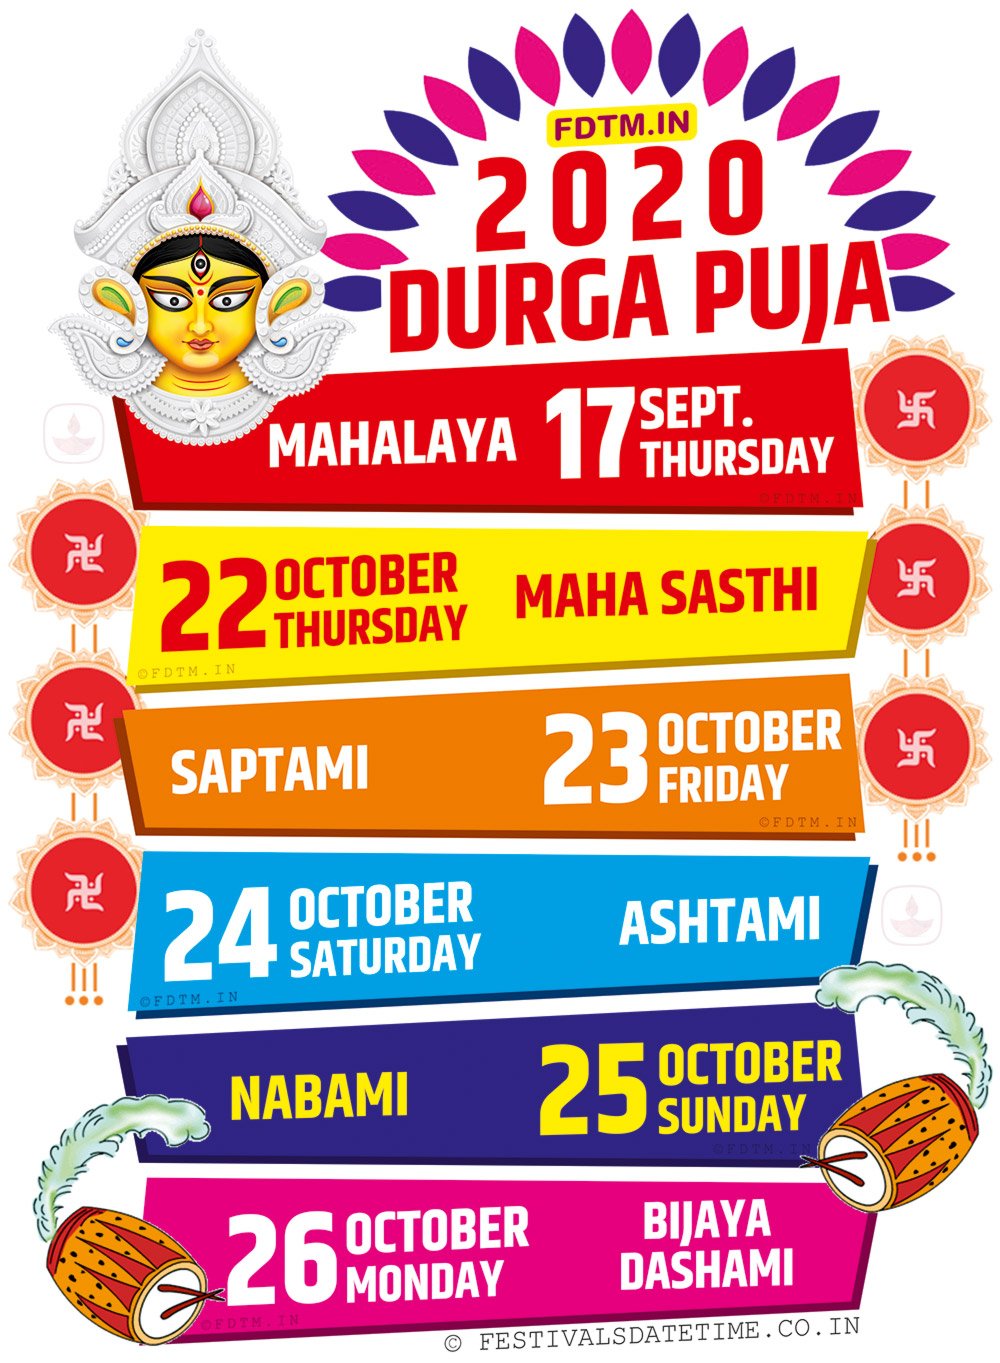 2020 Durga Puja Date and Time Schedule, 2020 Durga Puja in Kolkata